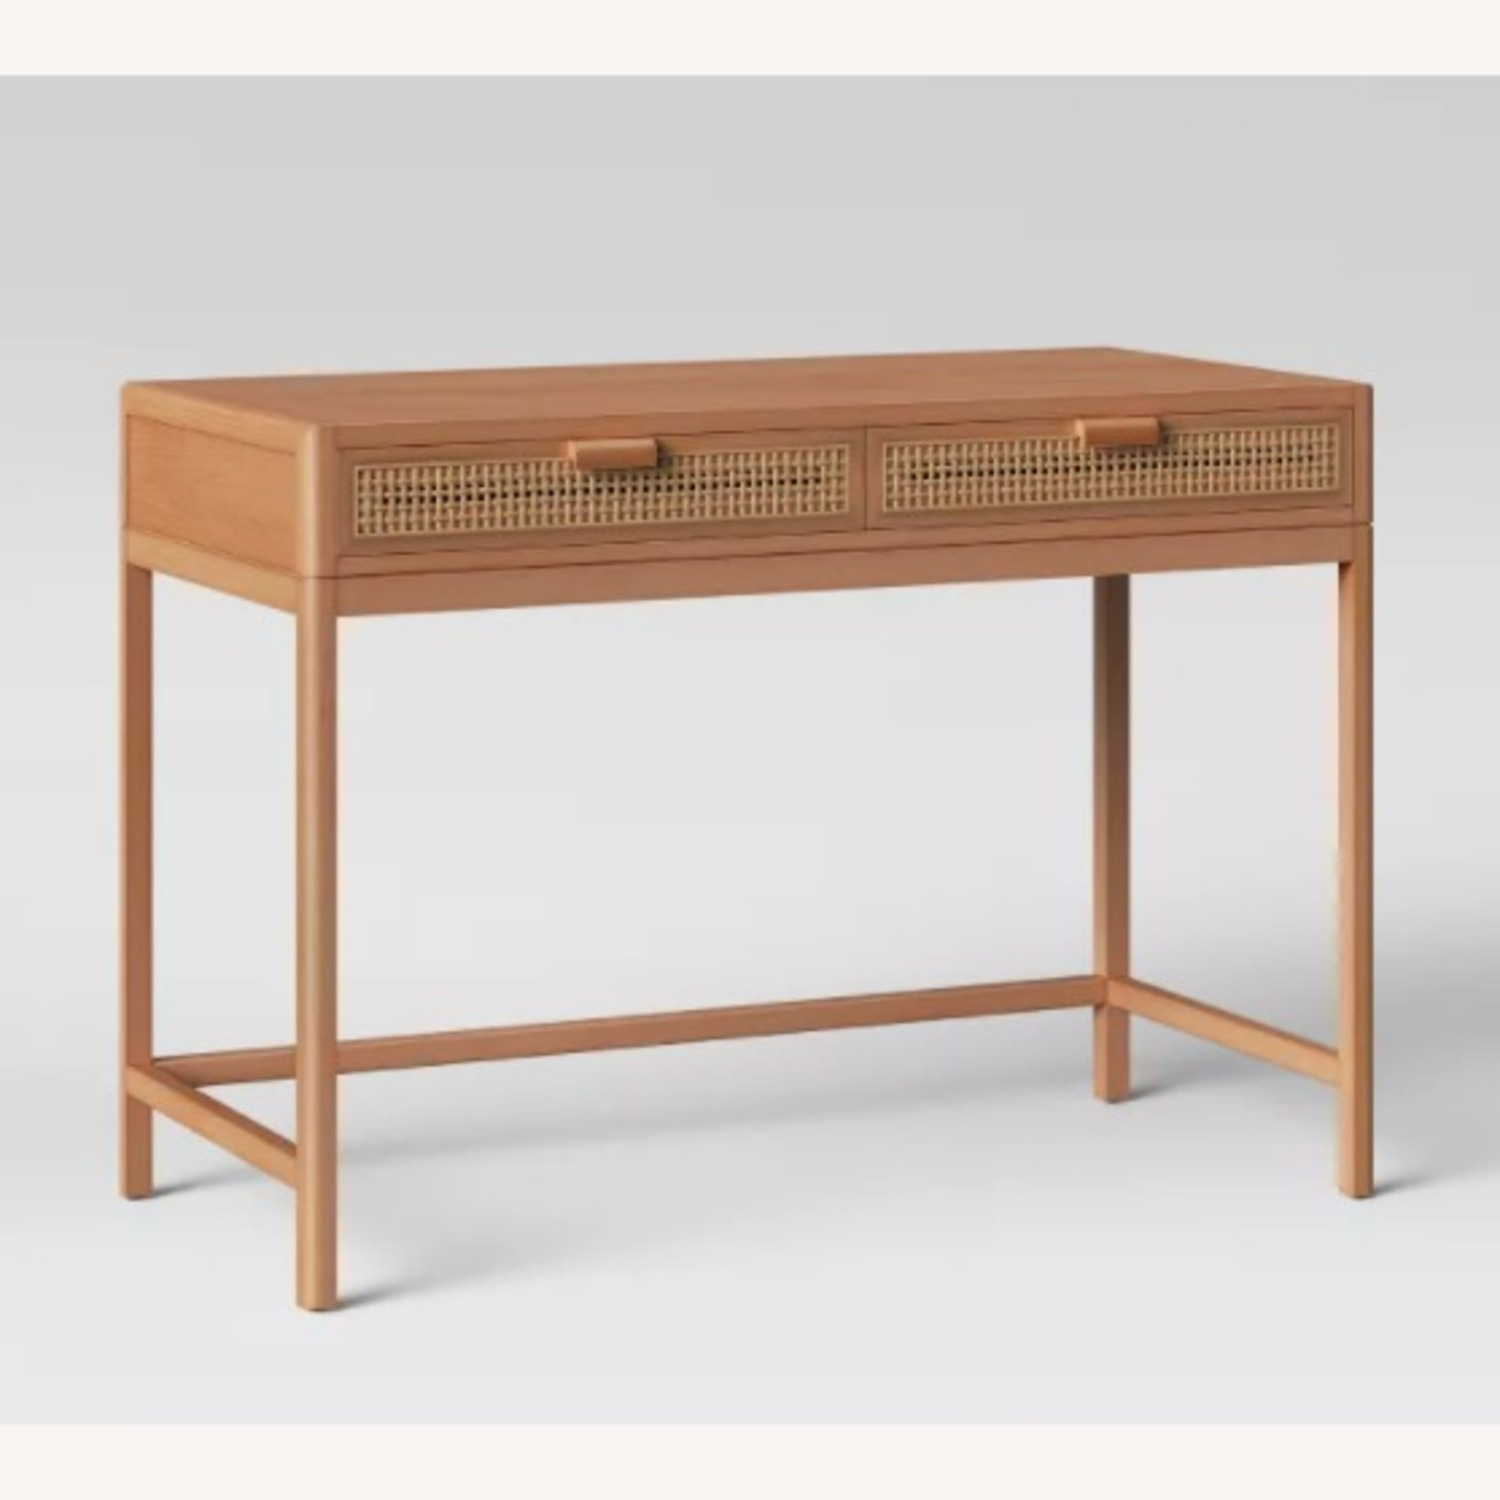 Target Opalhouse Writing Desk with Drawers Brown - image-3